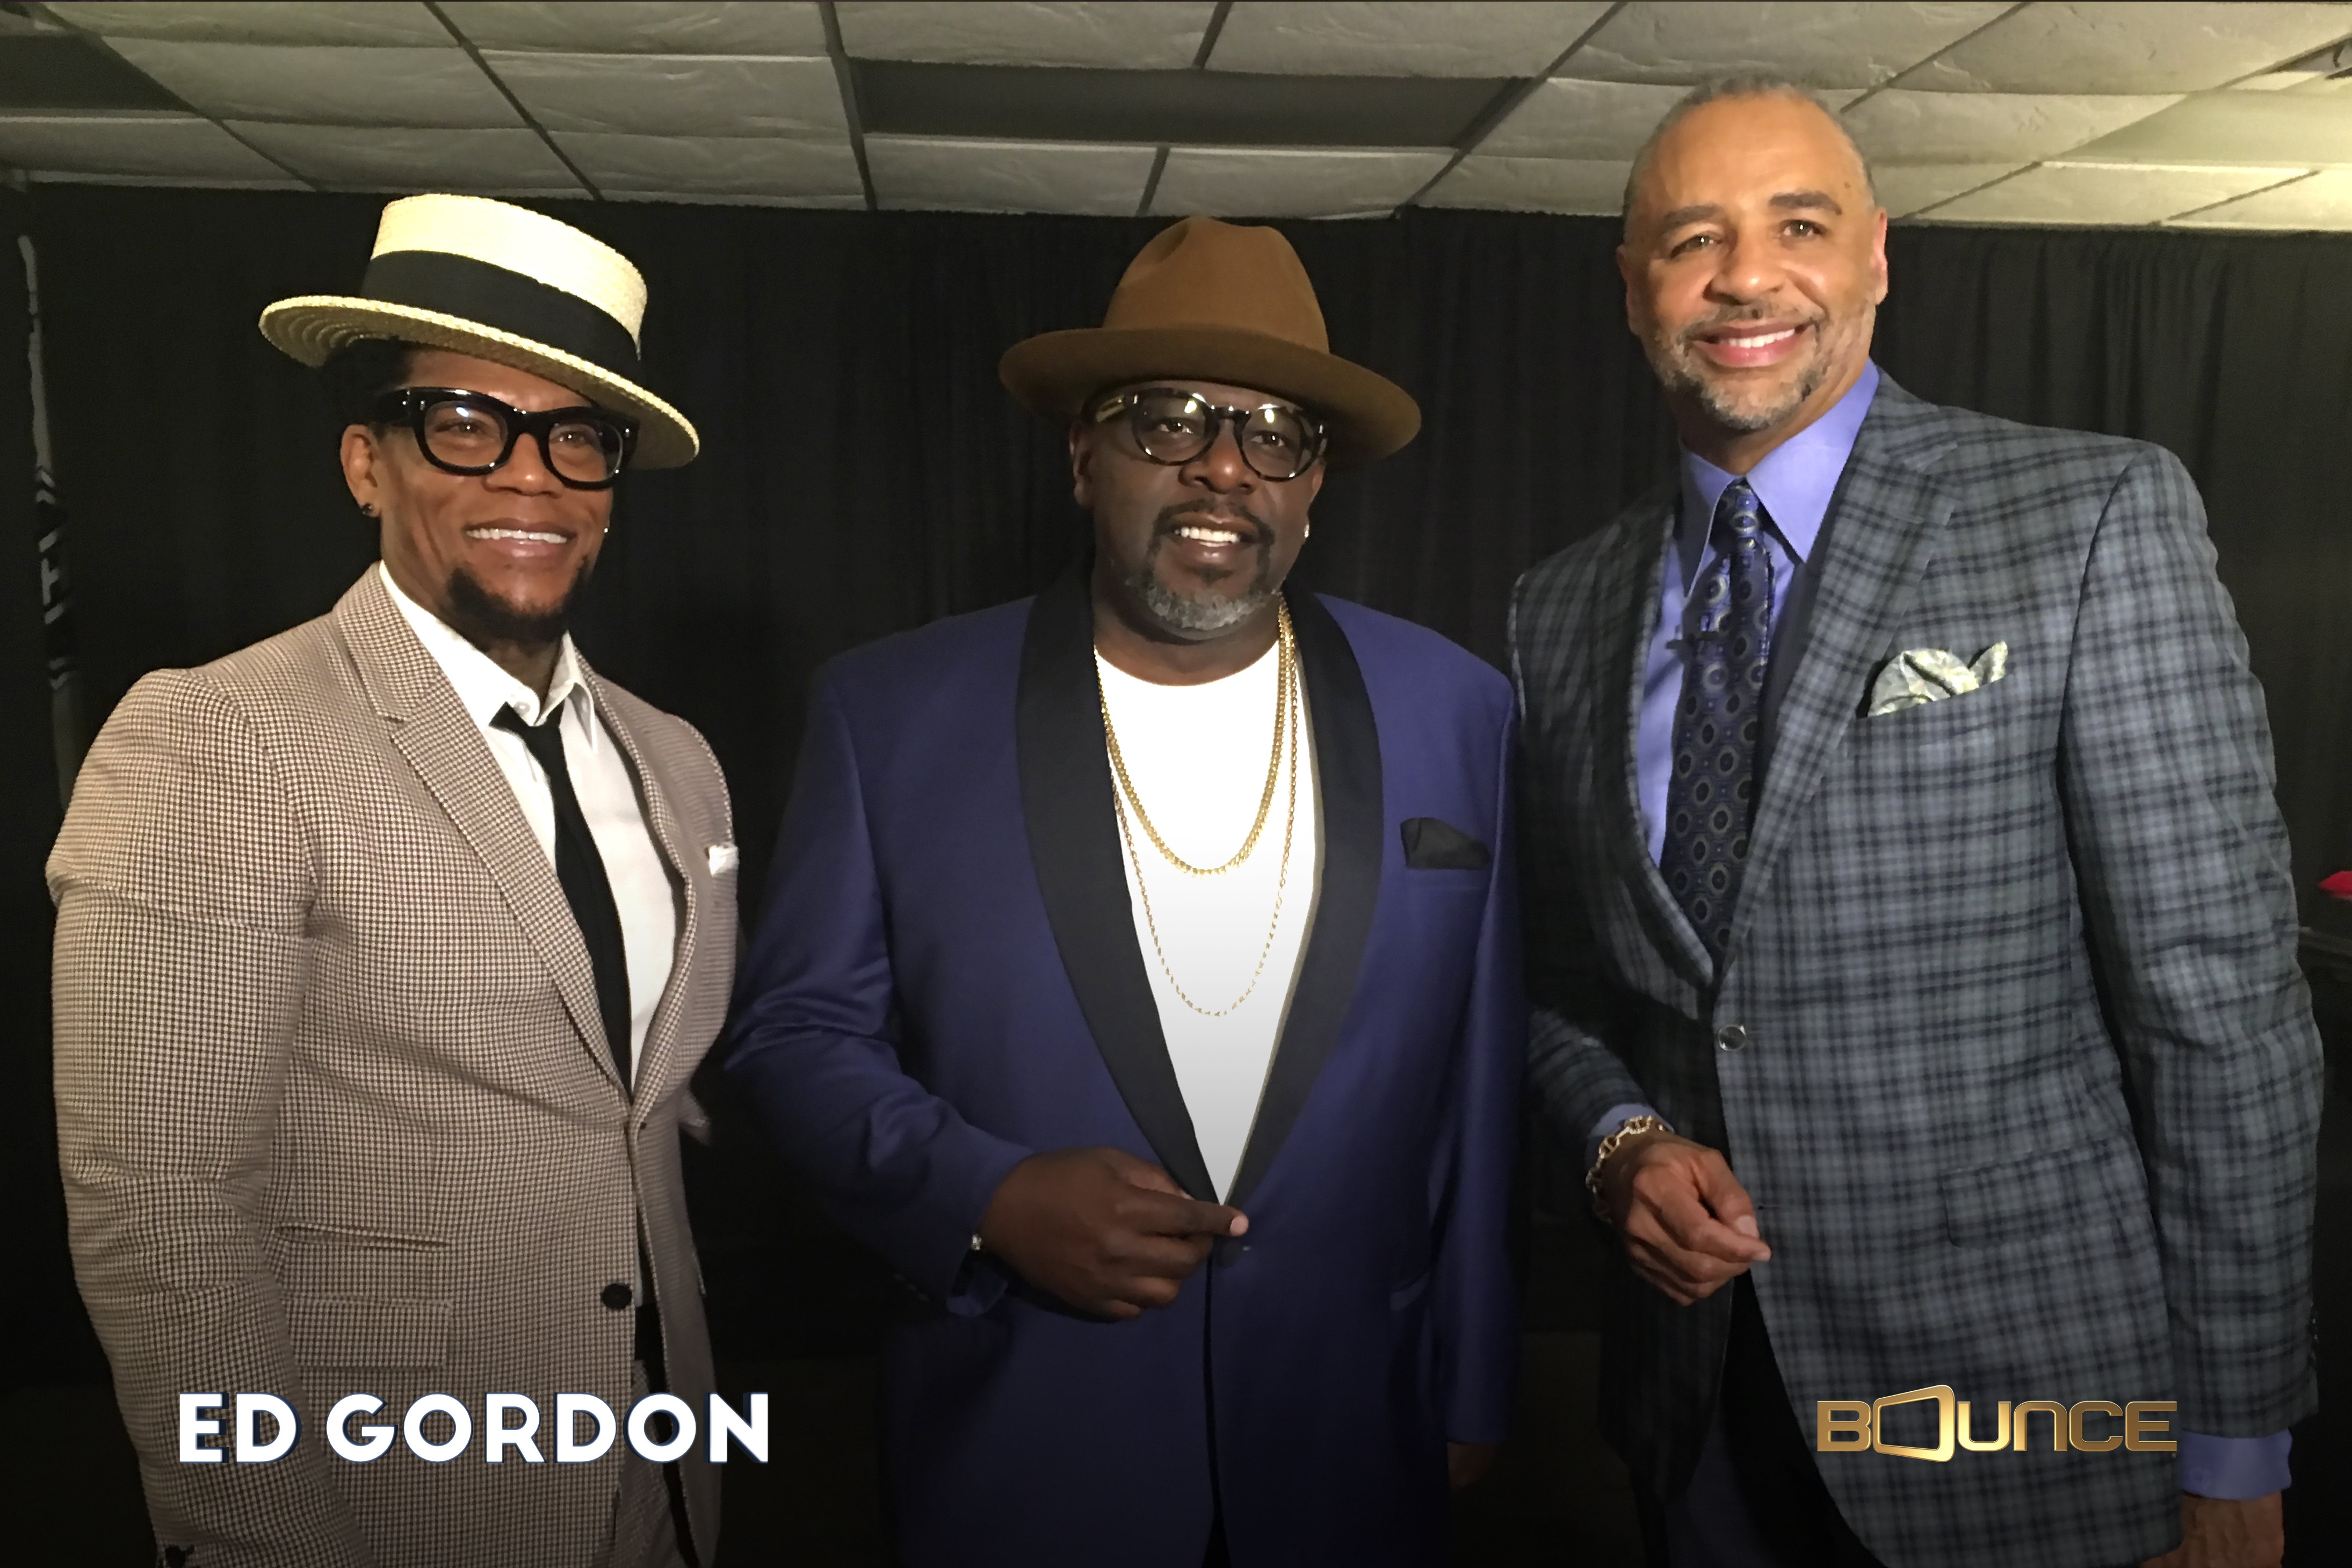 Photo of D.L. Hughley, Cedric The Entertainer and Ed Gordon.